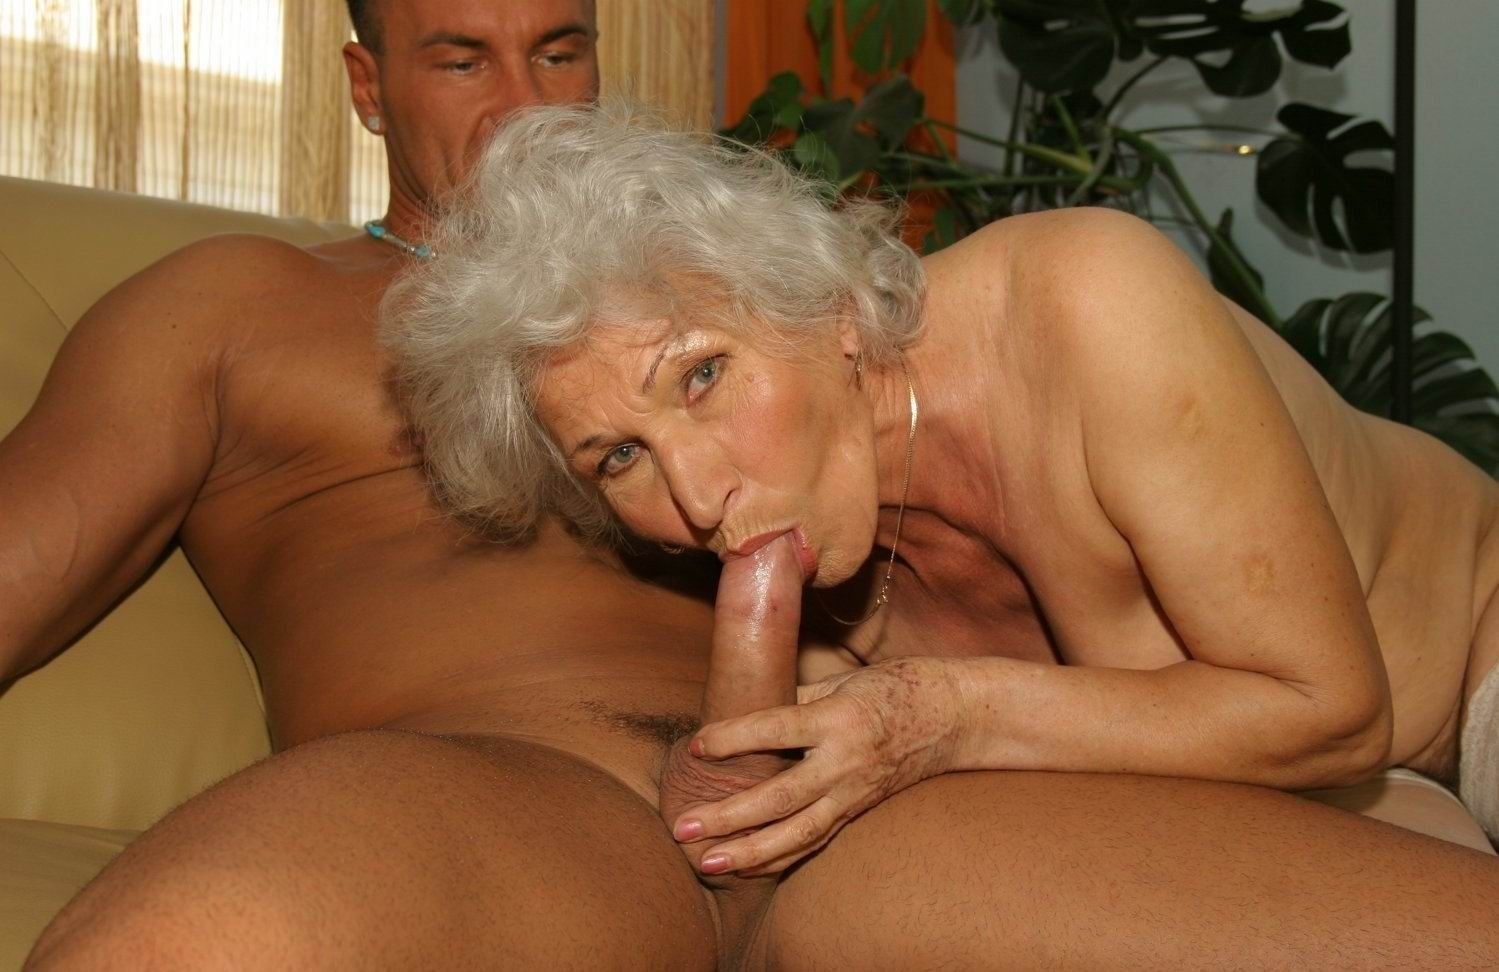 For the huge grannny sex all